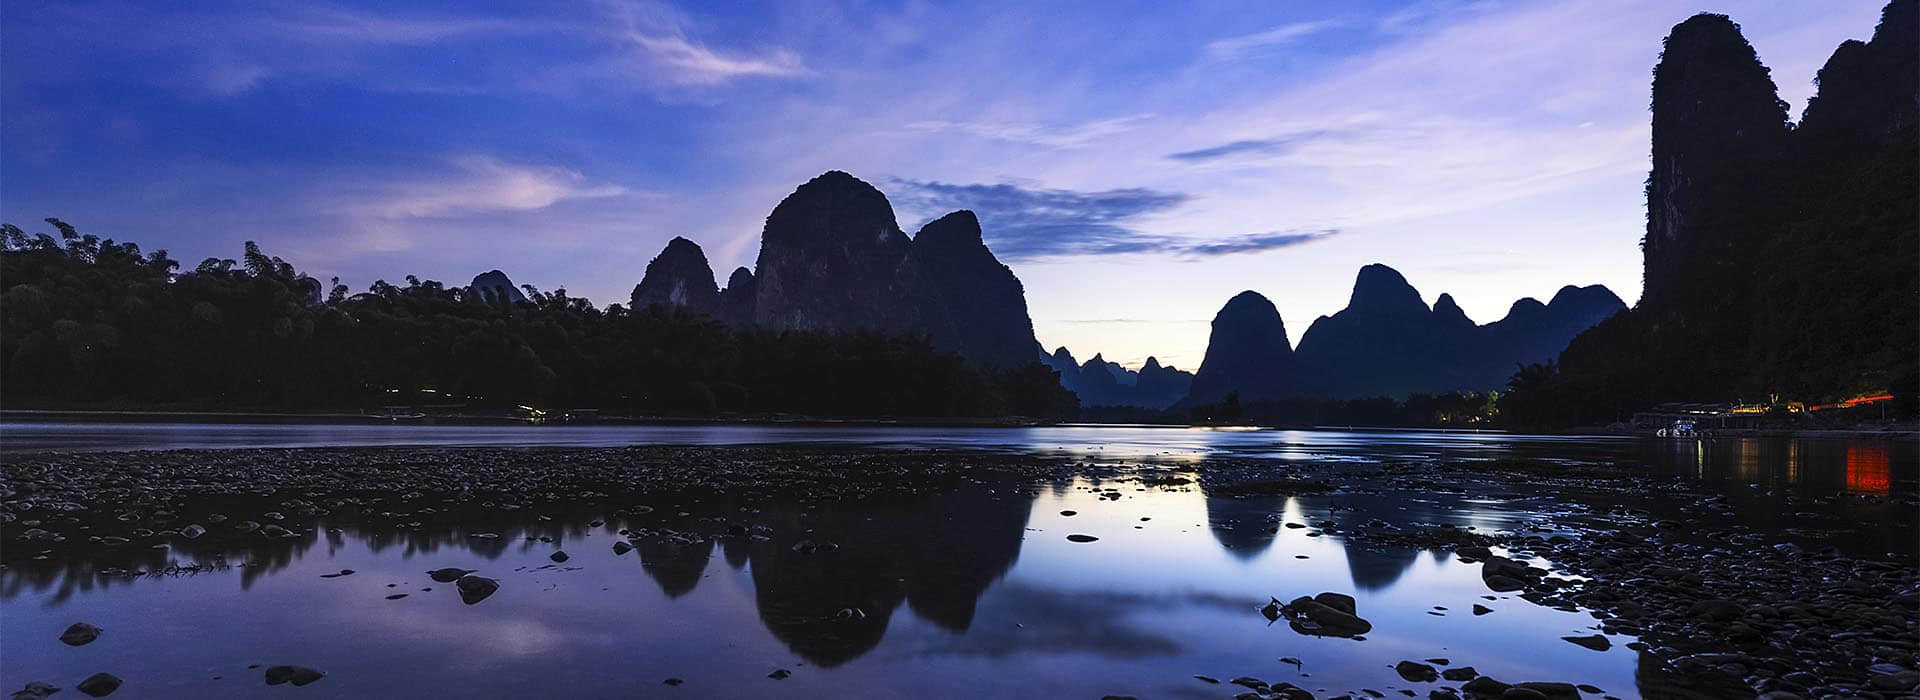 Discover the Natural Beauty of Guilin from Guangzhou